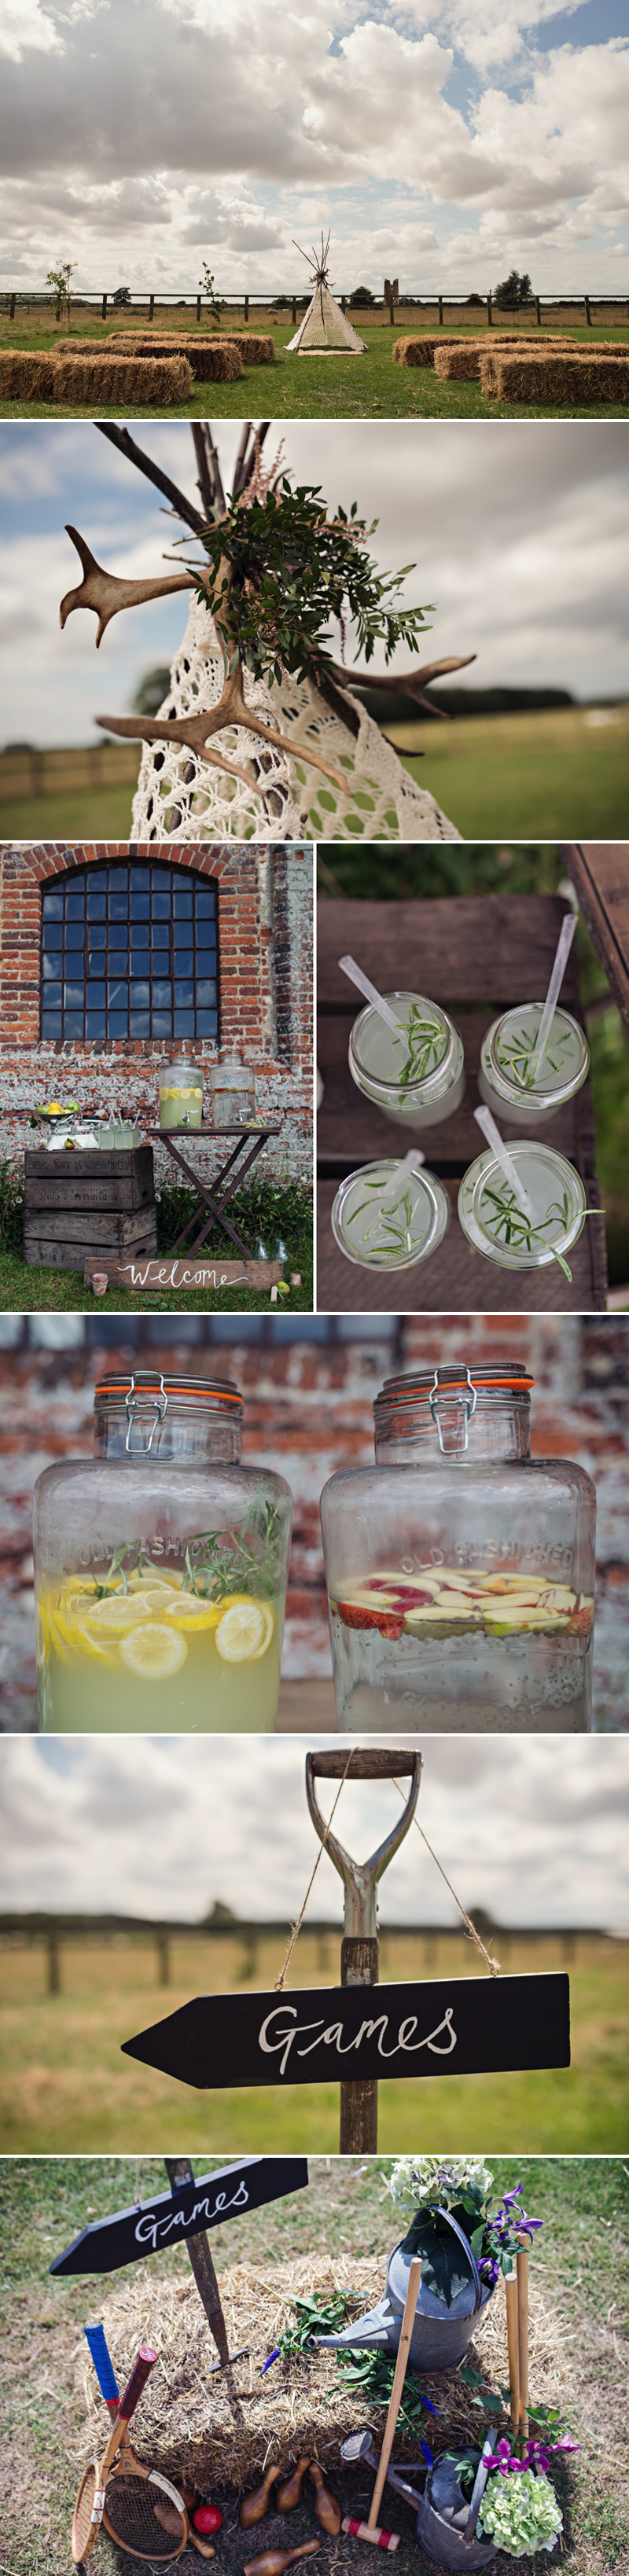 14-rustic-wedding-styling-tips-coco-wedding-venues-godwick-great-barn-summer-love-photography-layer-3